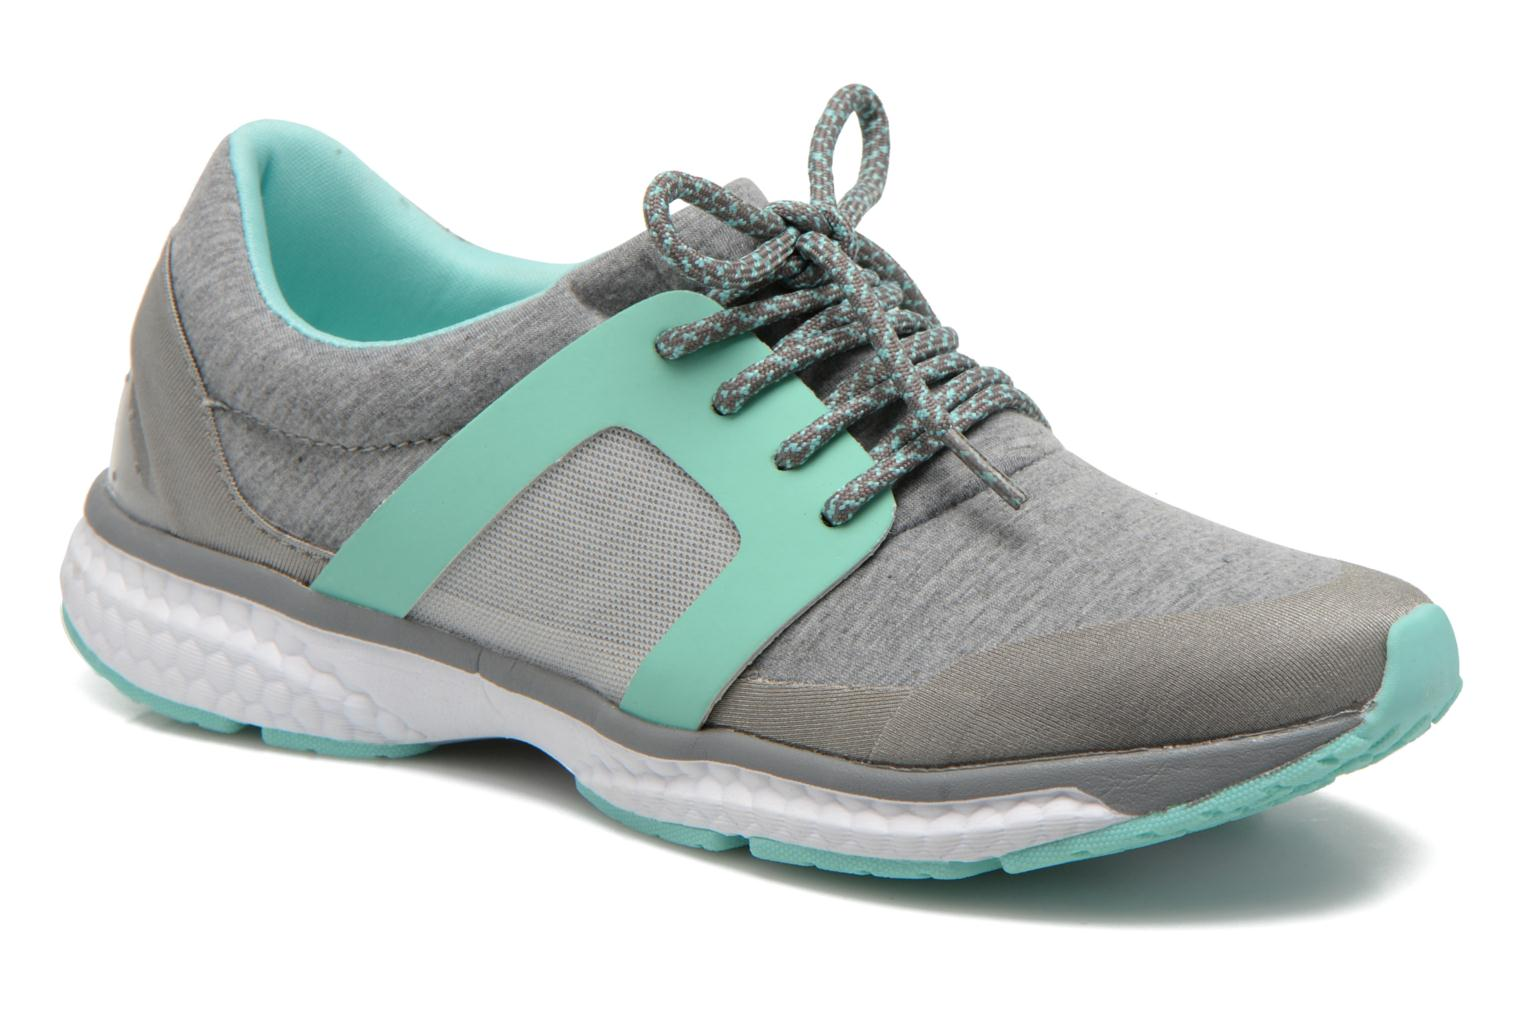 BROXYM light grey / mint